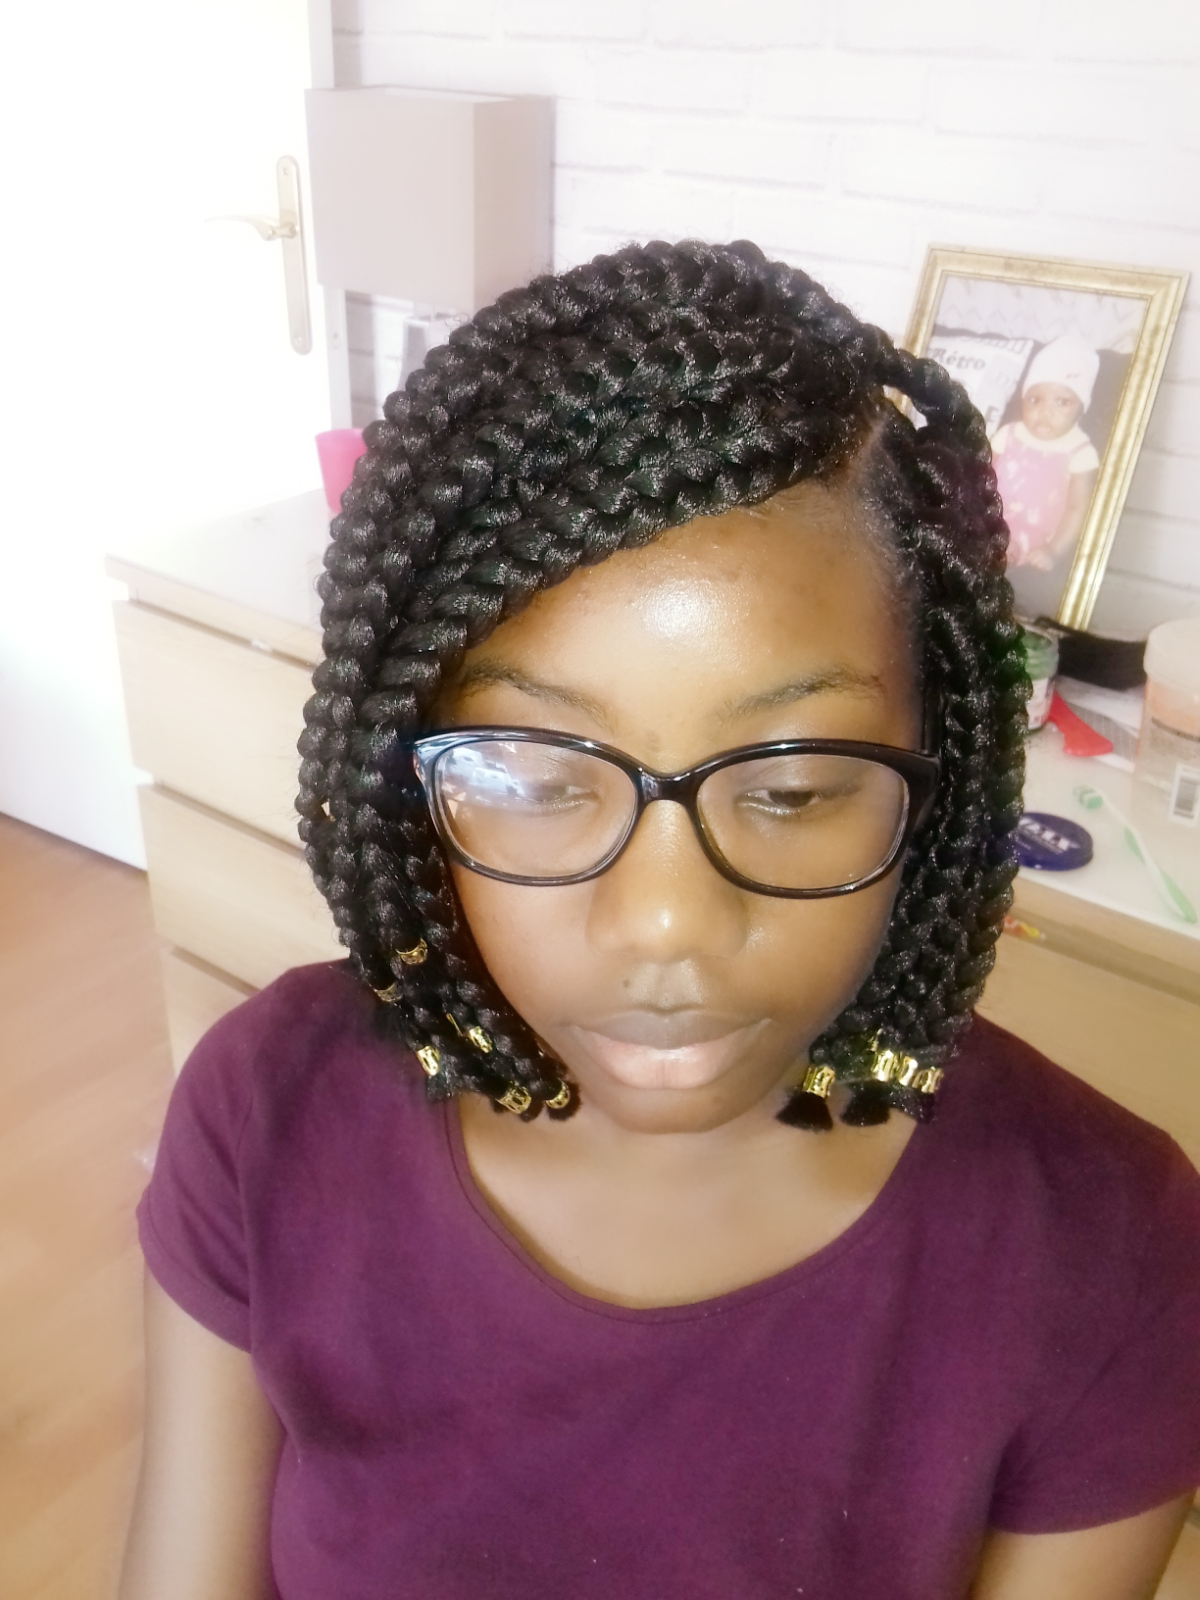 salon de coiffure afro tresse tresses box braids crochet braids vanilles tissages paris 75 77 78 91 92 93 94 95 DCIJGGME